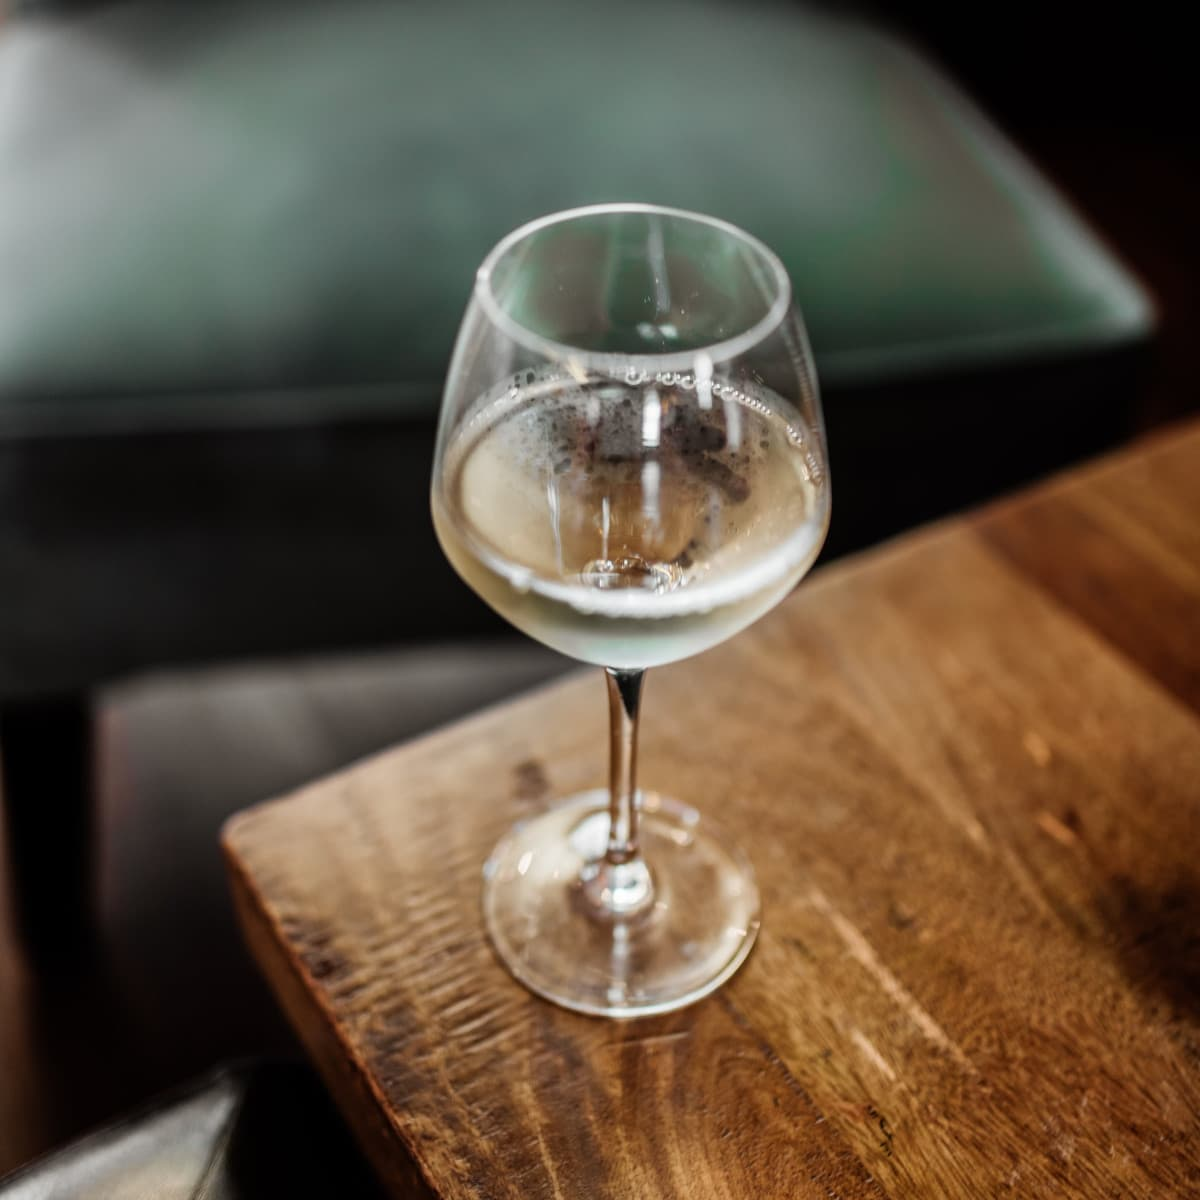 Glass of Chardonnay on a wooden table